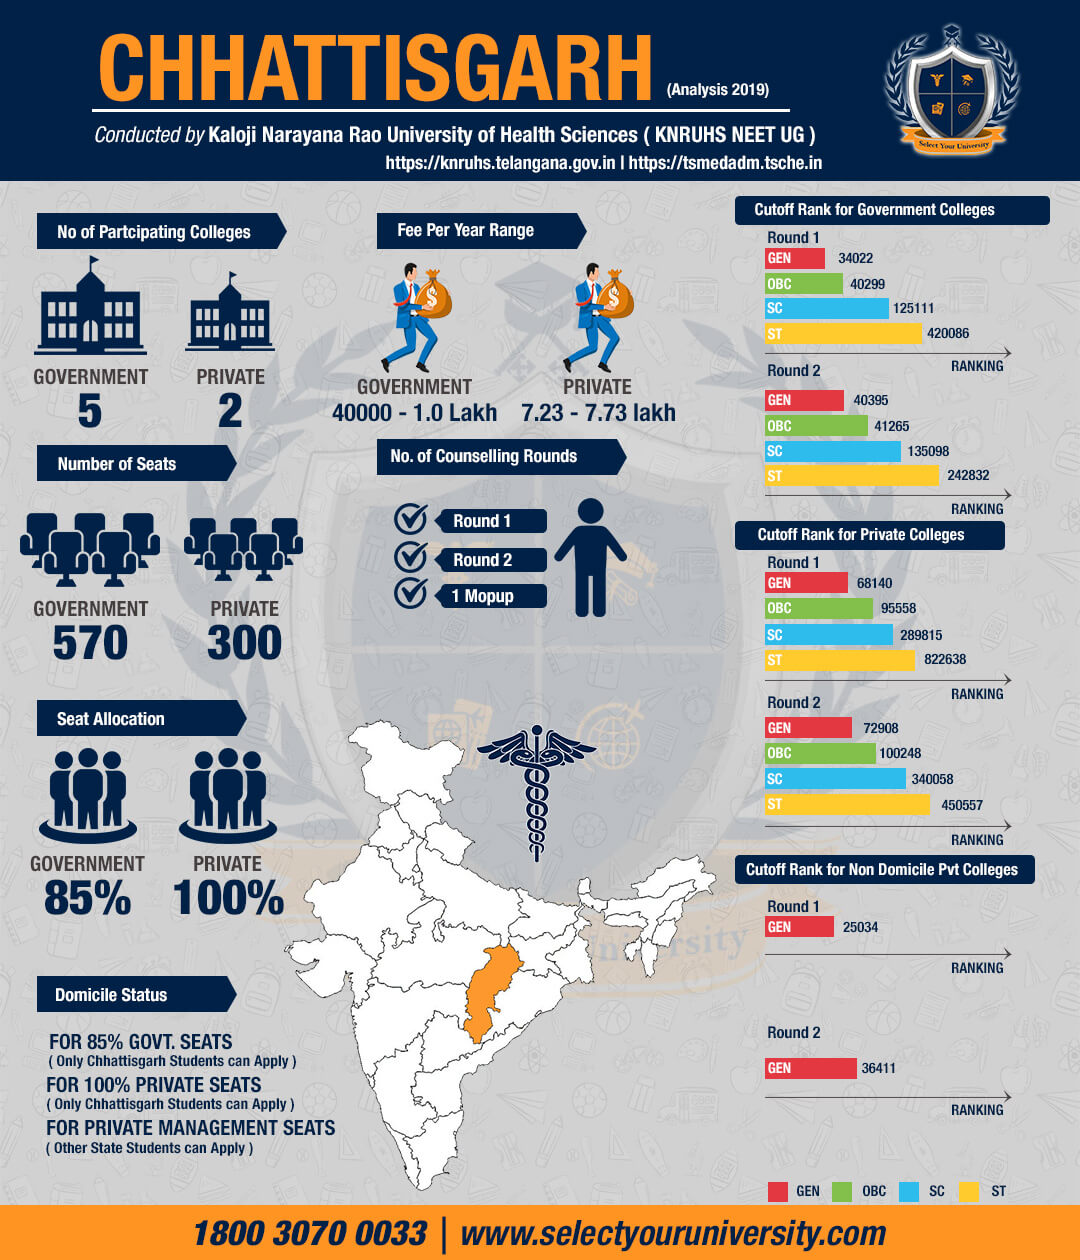 mbbs-chhattisgarh-analytics